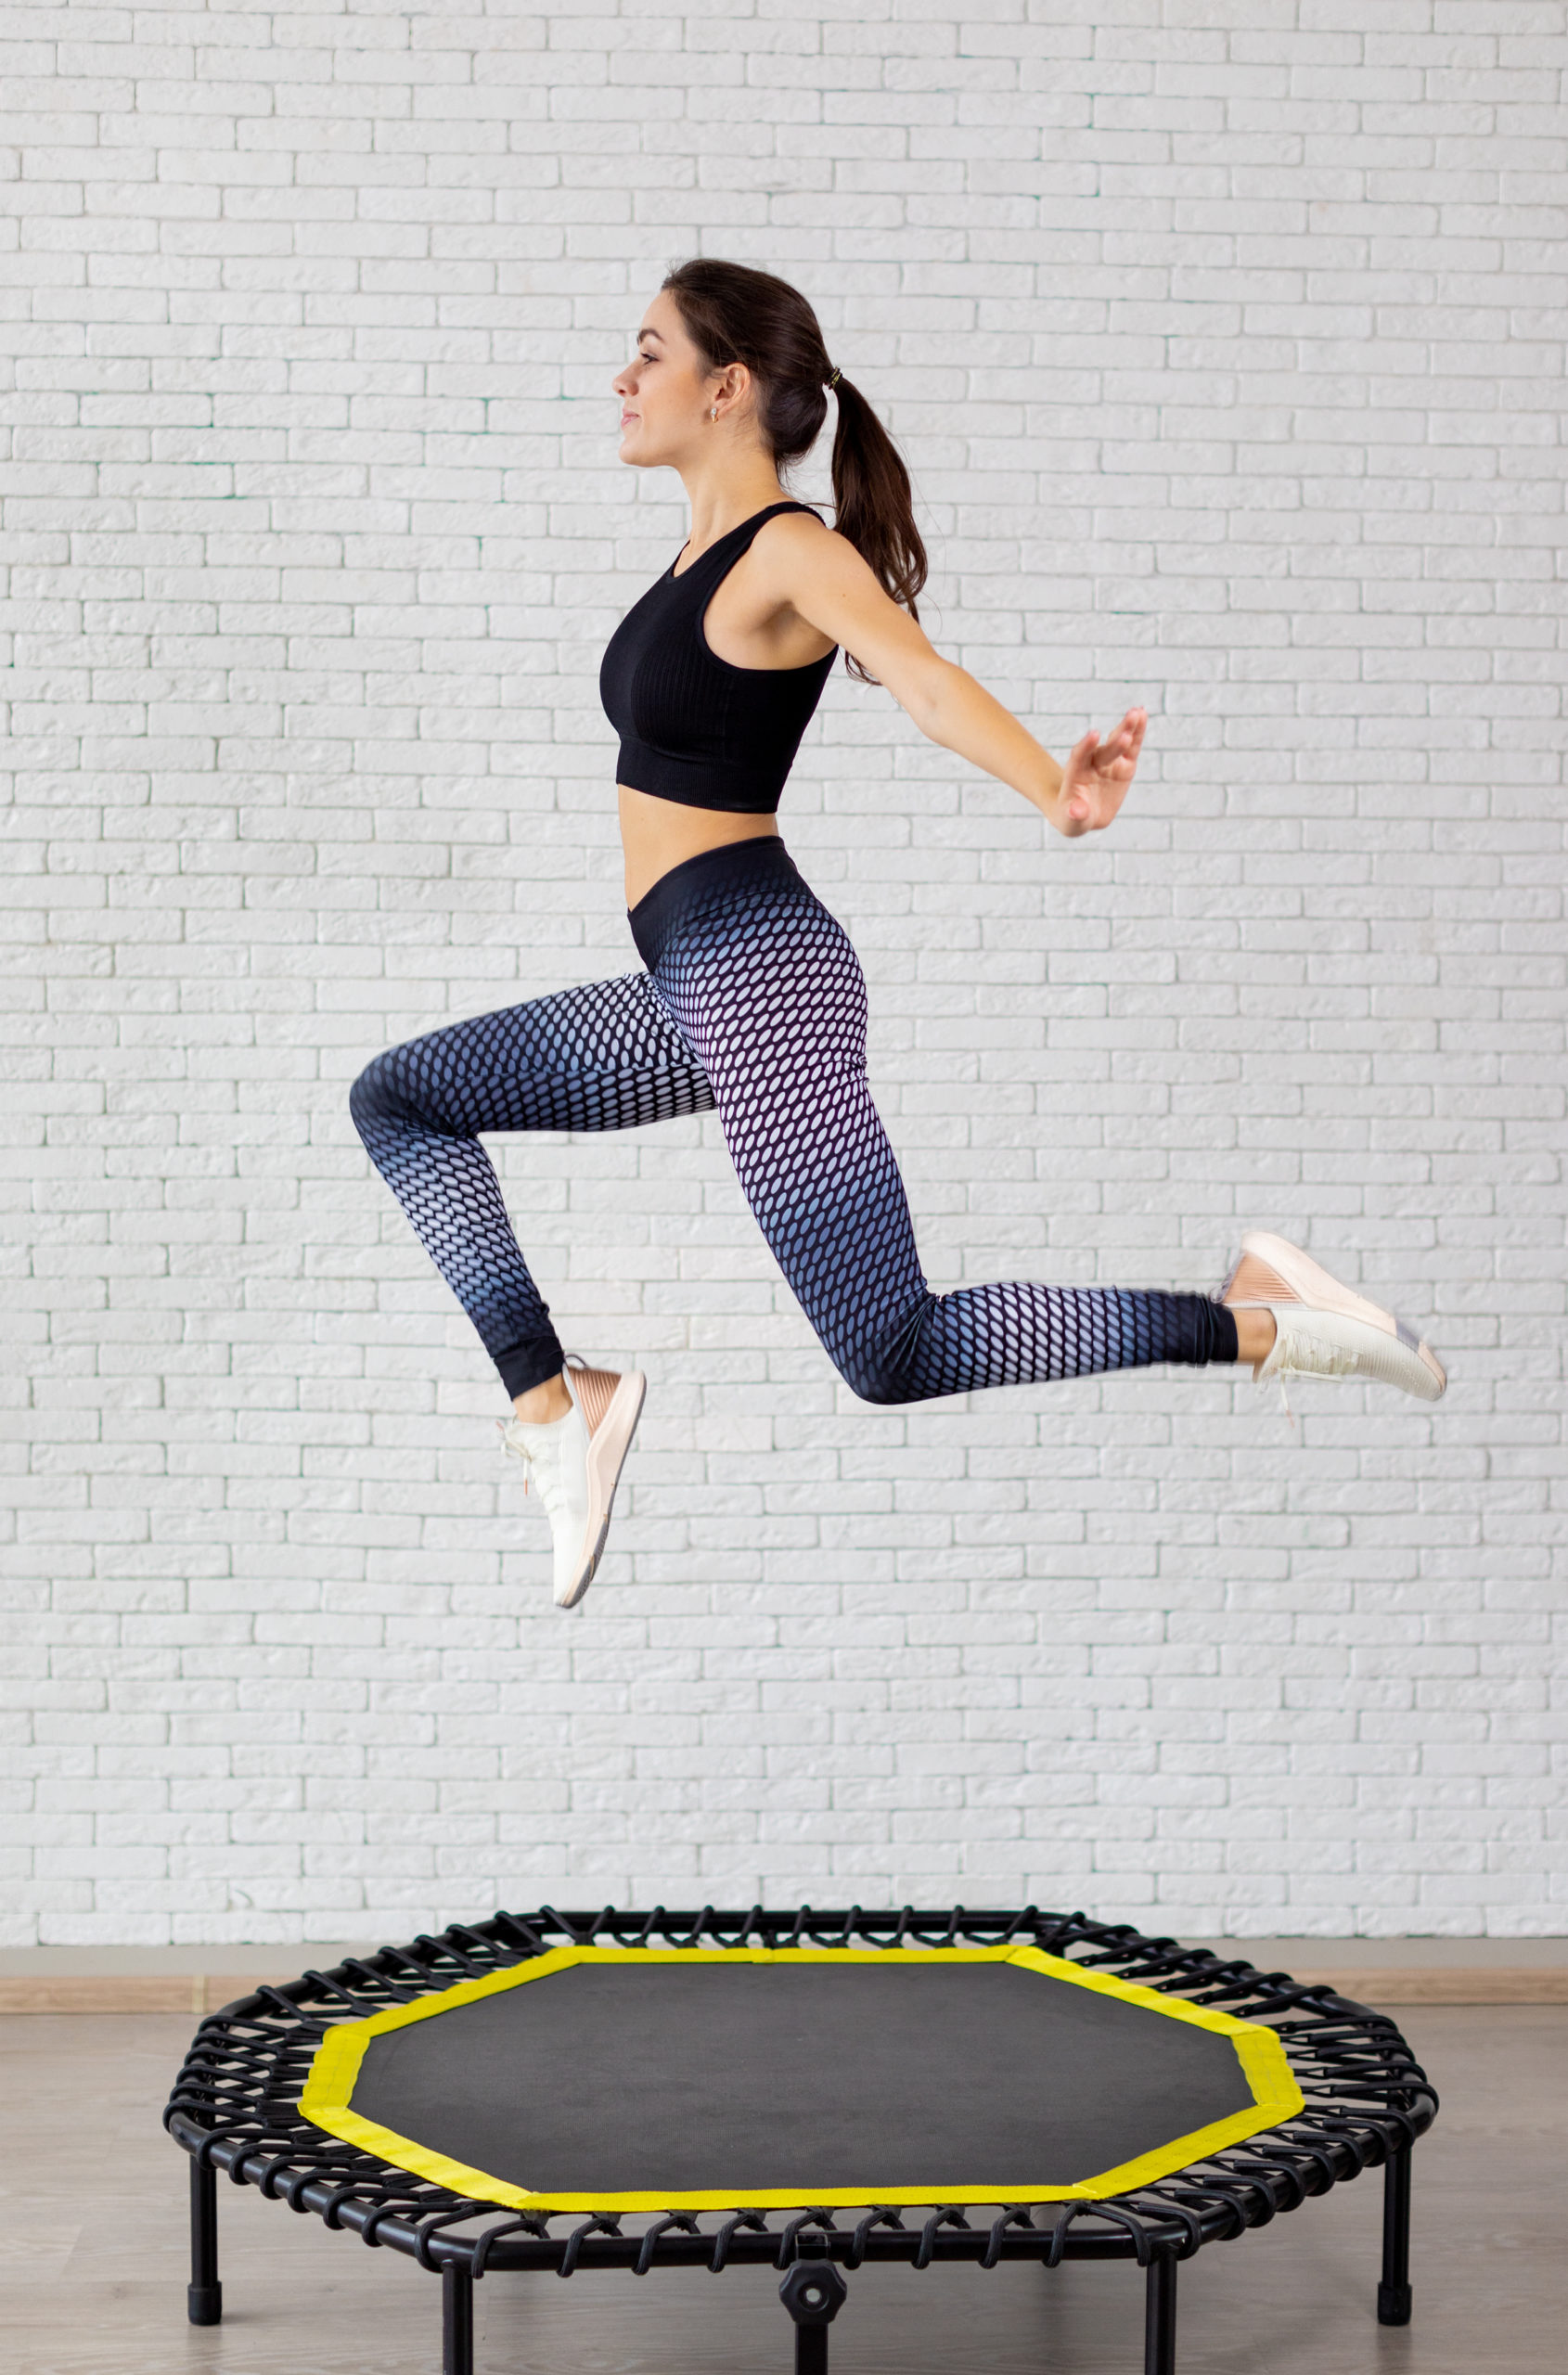 Relaxed woman jumping on trampoline.young fitness girl trains on a mini trampoline in the Studio